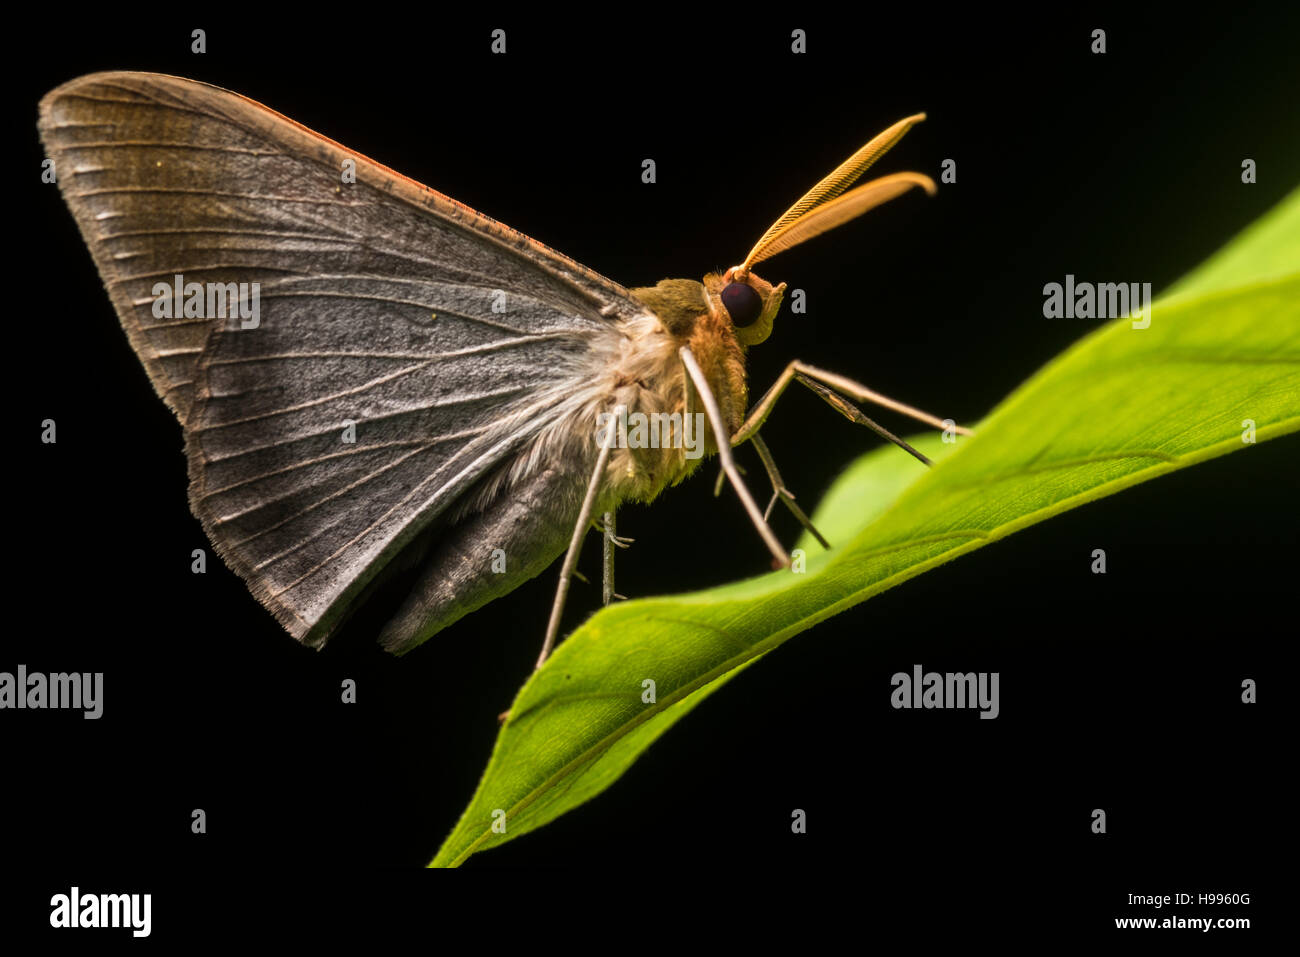 A unidentified moth from the Peruvian jungle. Stock Photo